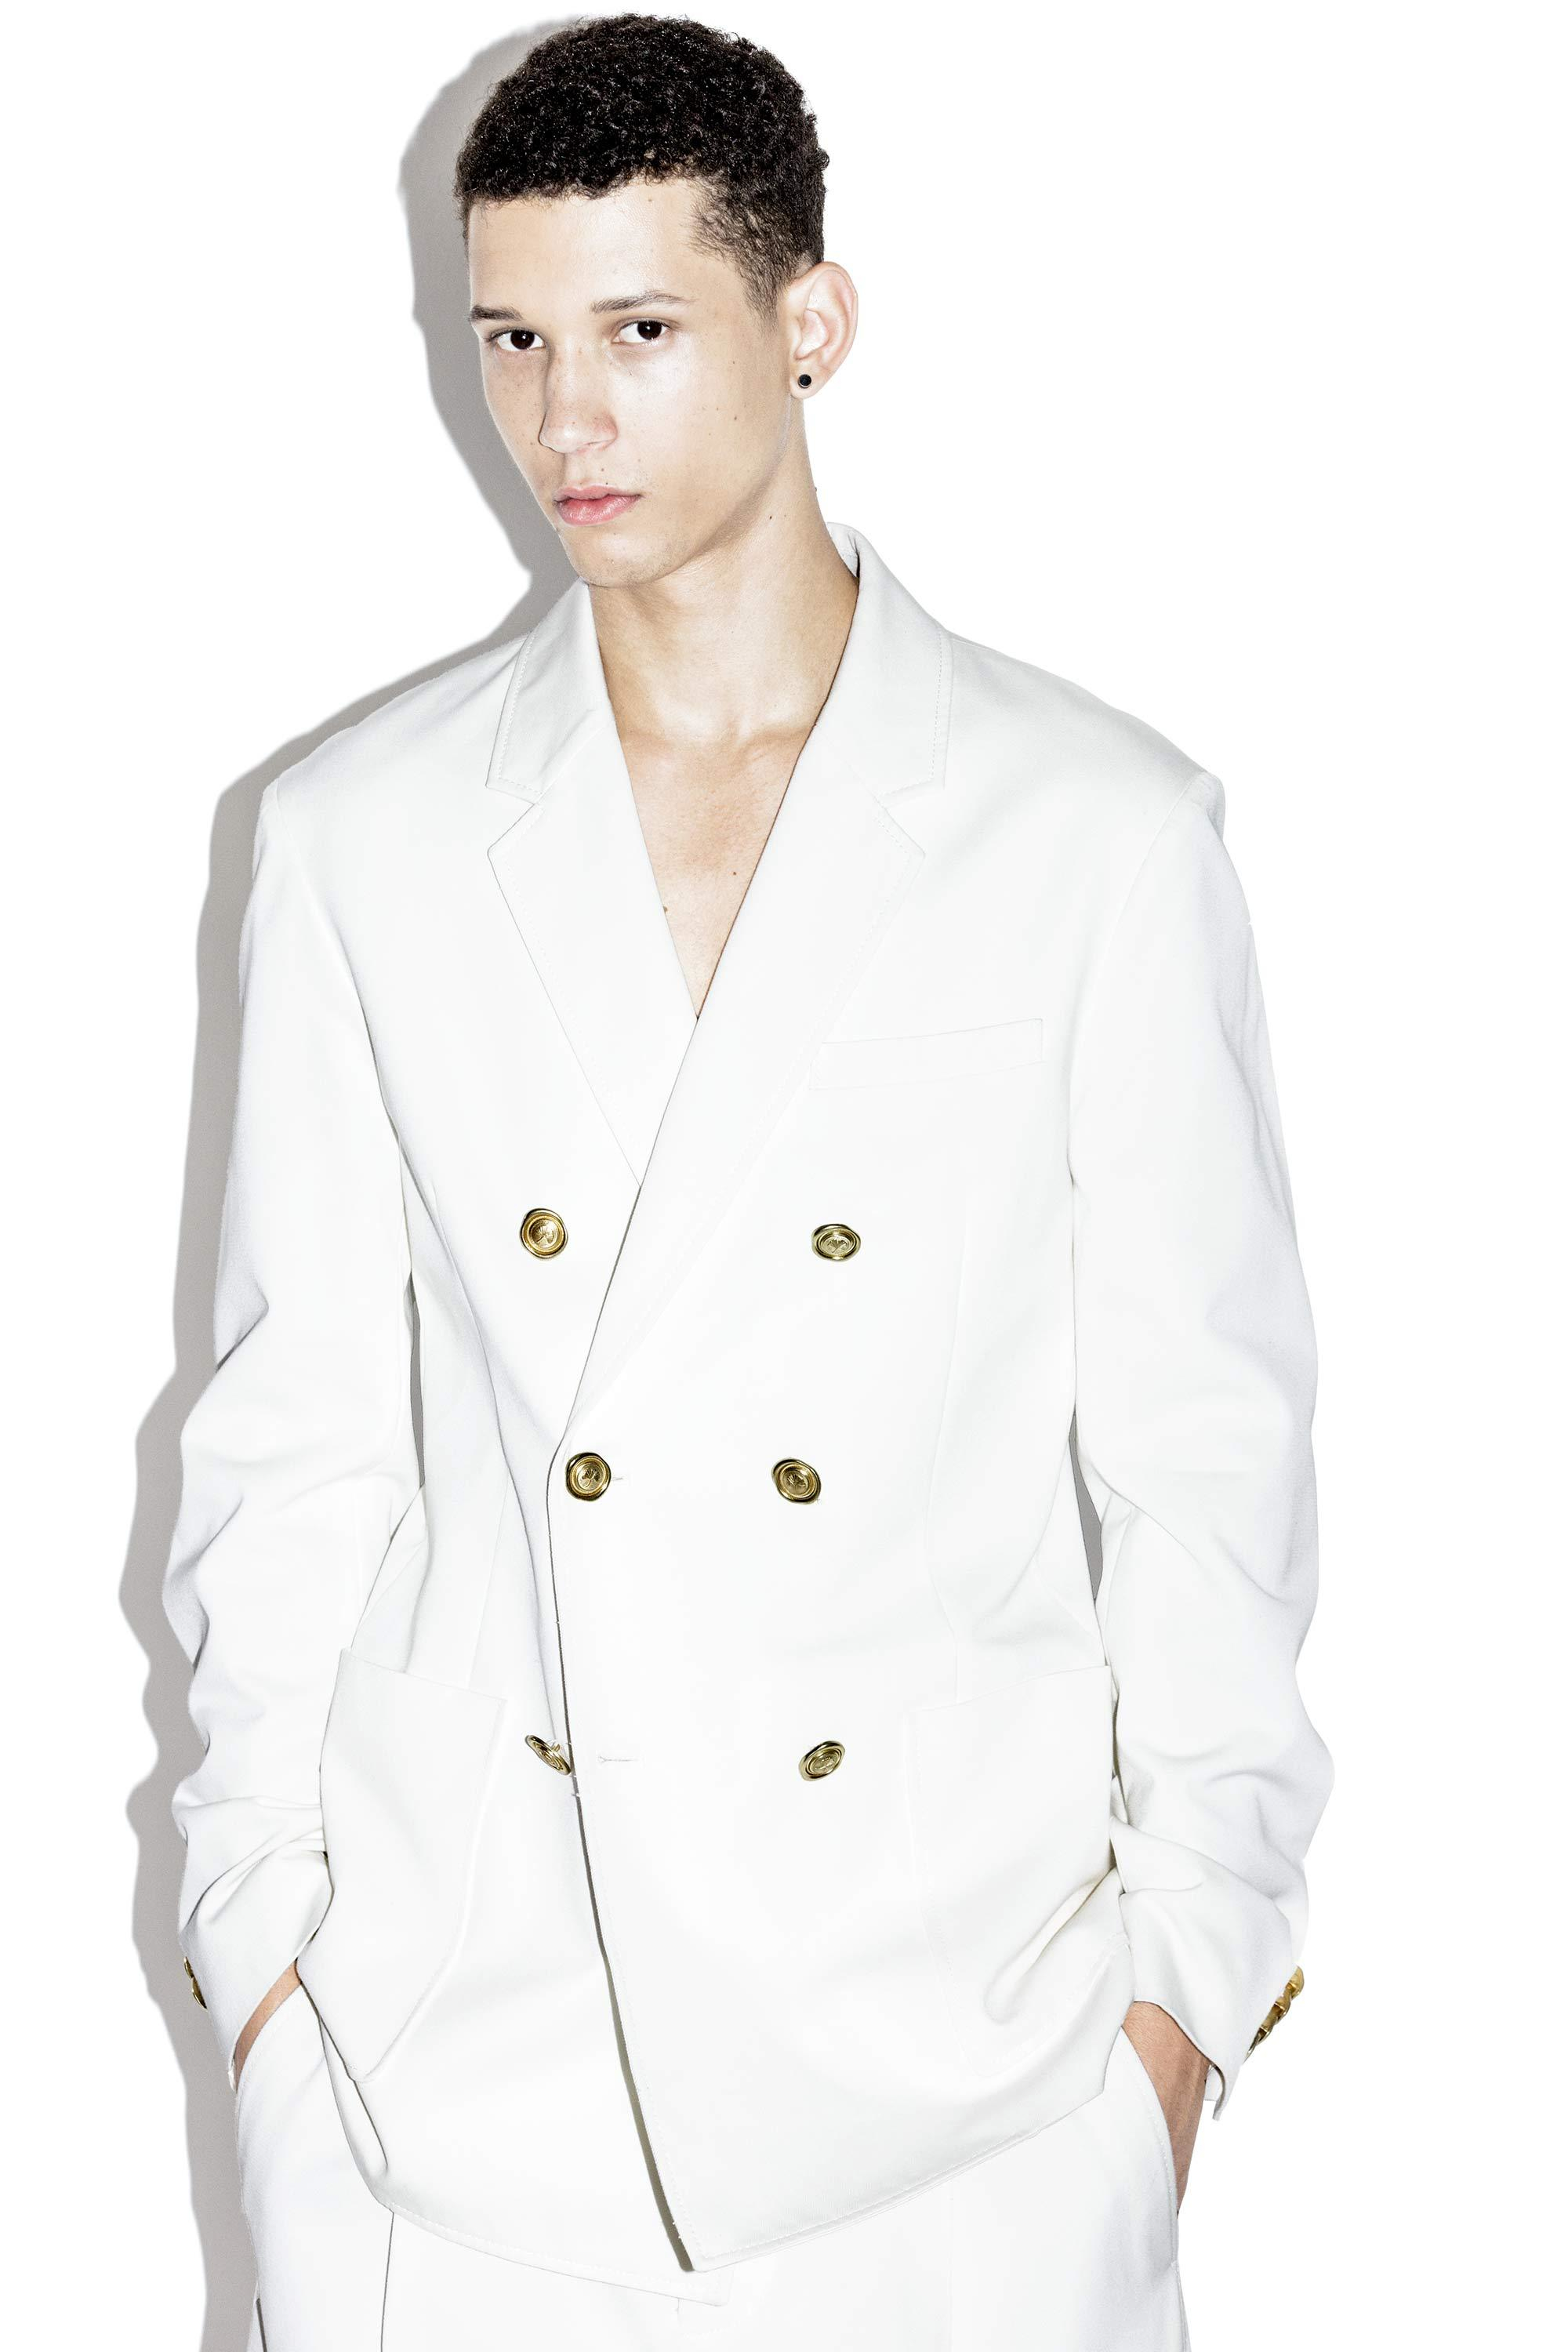 3.1 phillip lim Double-breasted Jacket in White for Men | Lyst